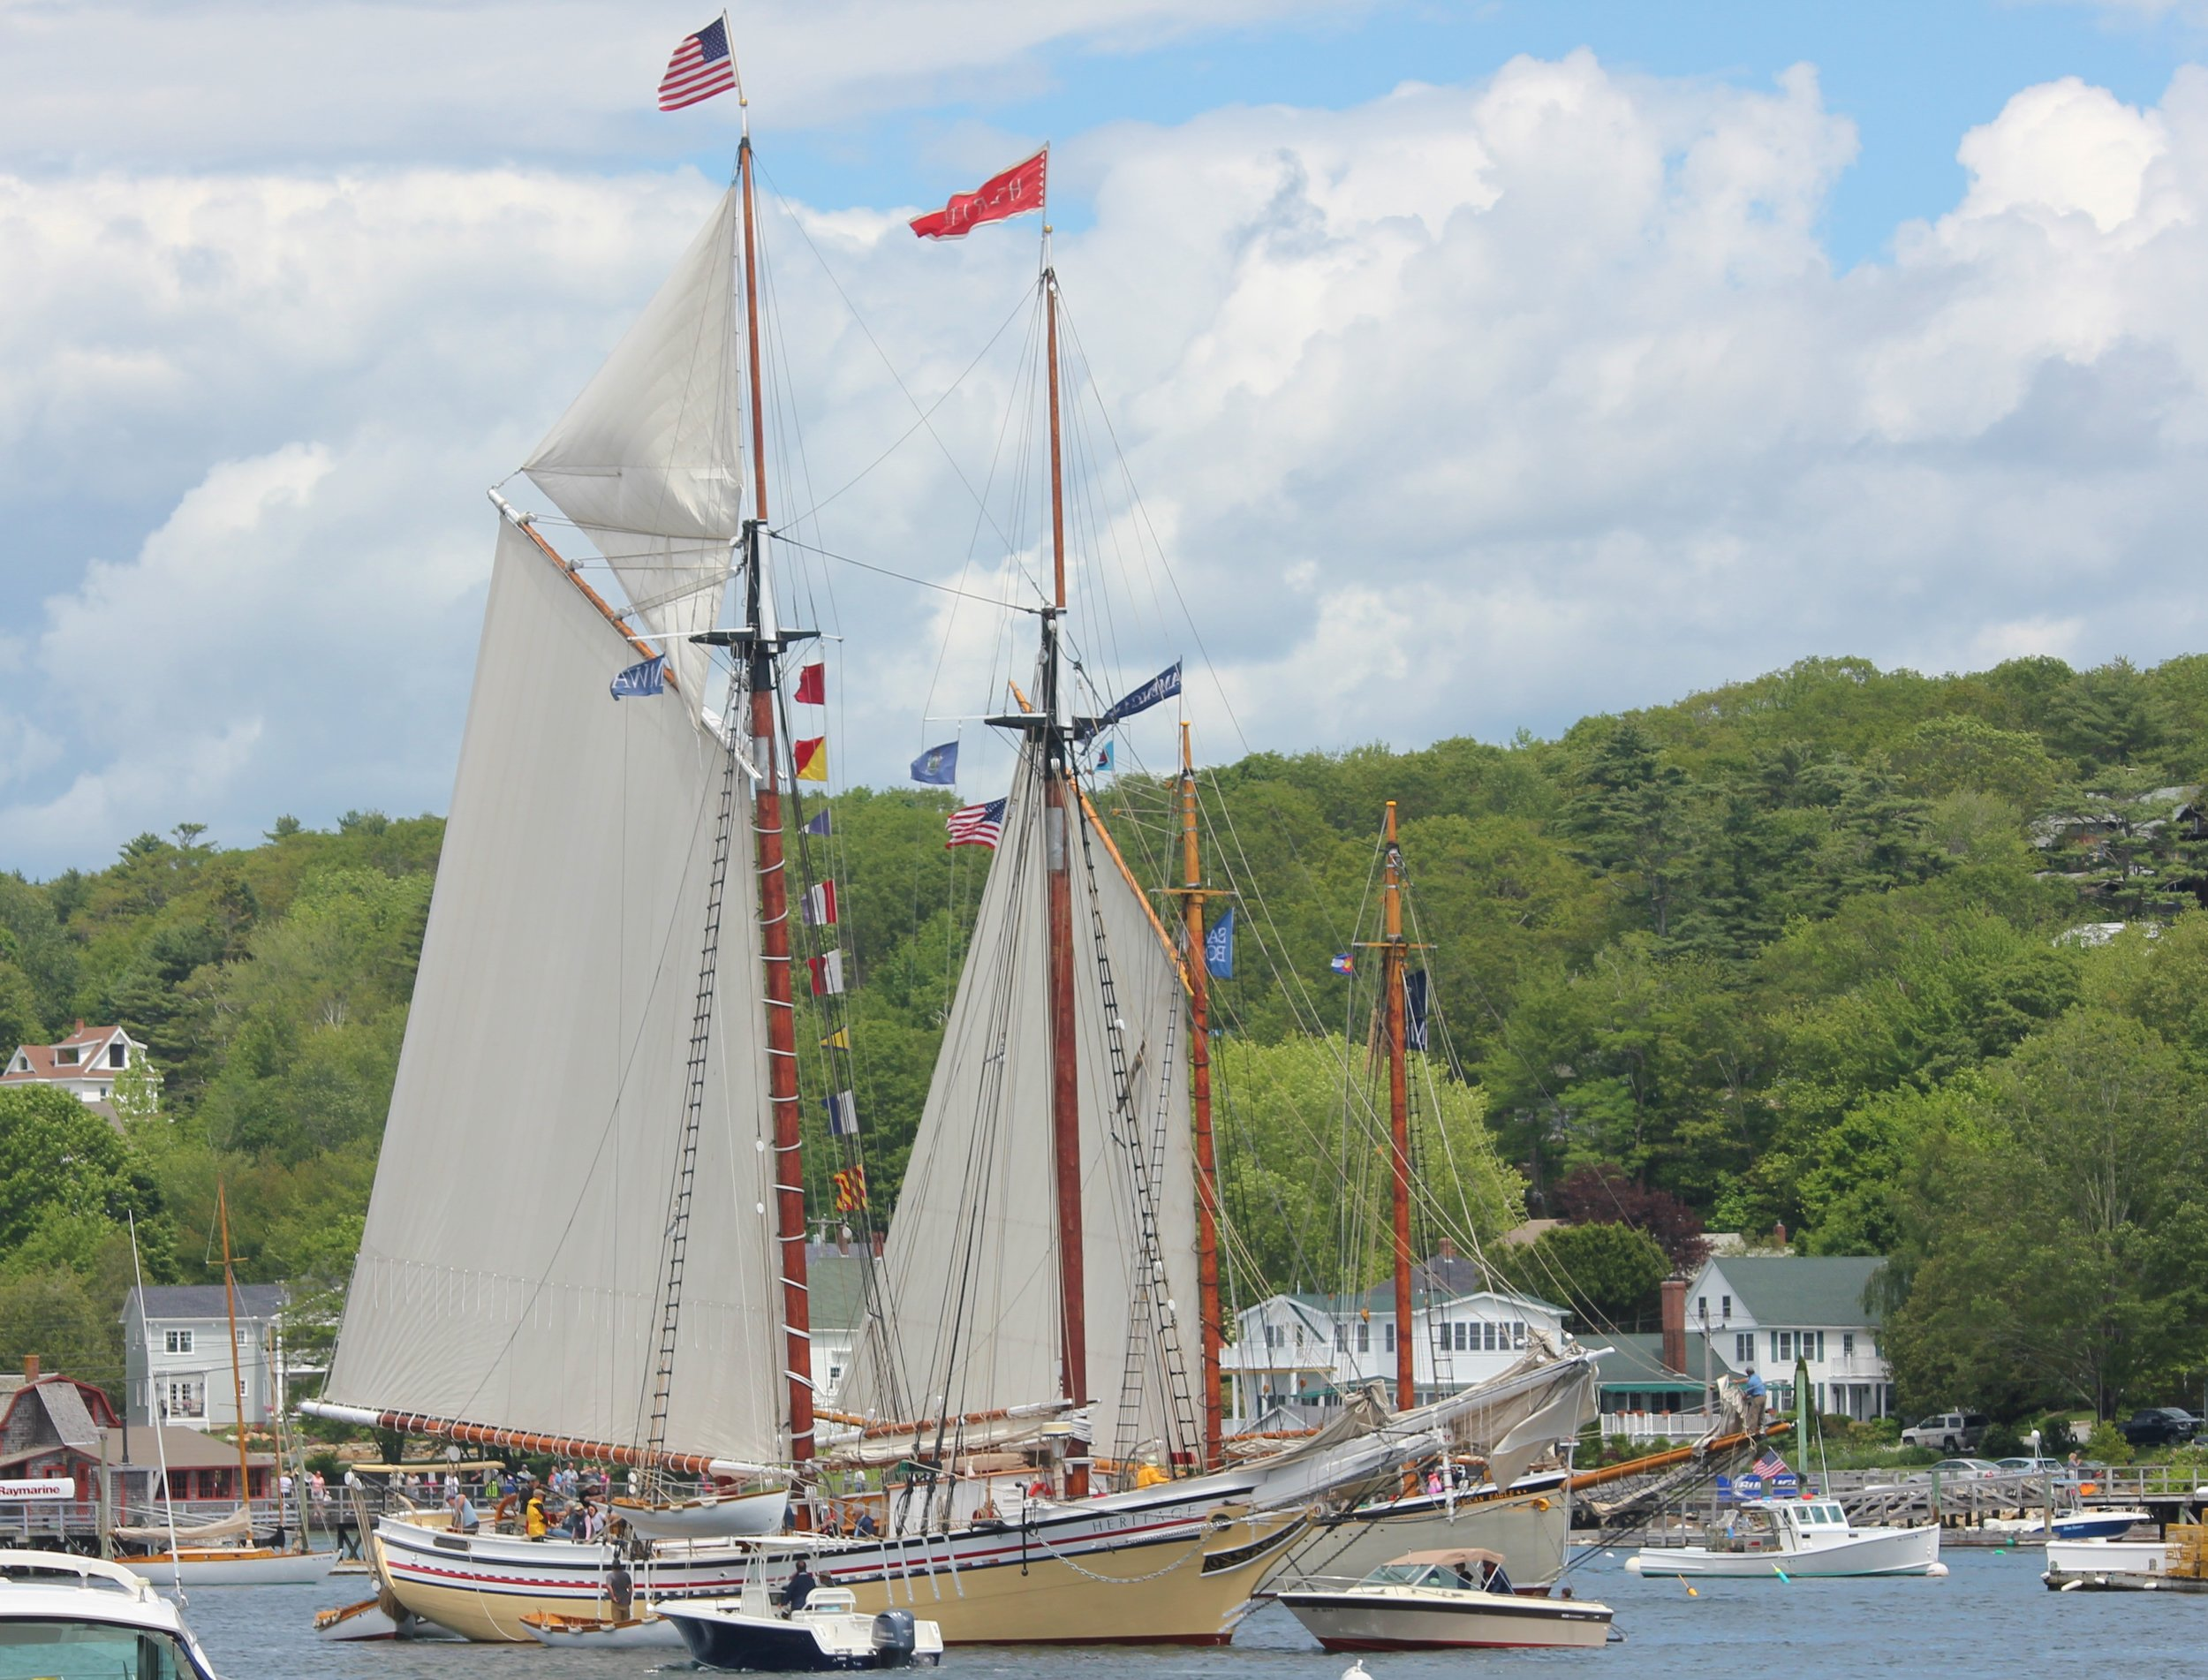 Schooners Heritage and American Eagle